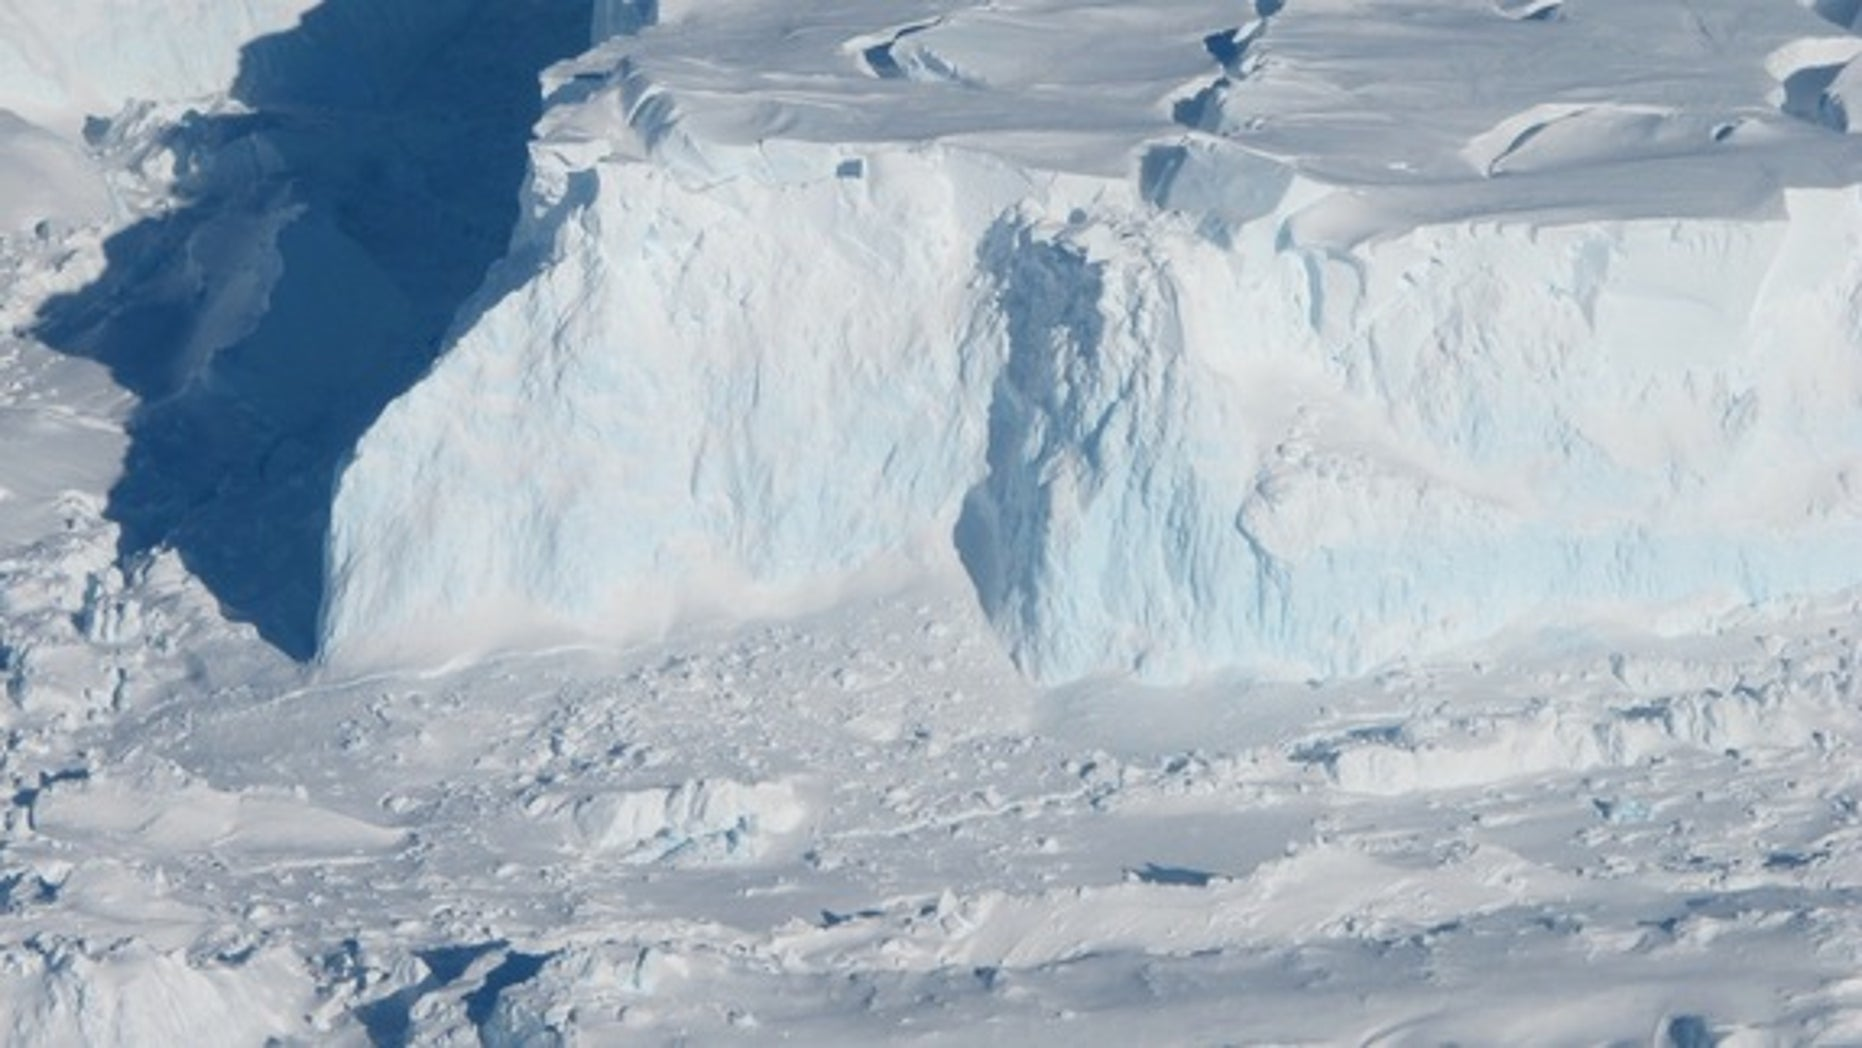 The edge of the Thwaites glacier, shown here in an image taken during Operation Icebridge, a NASA-led study of Antarctic and Greenland glaciers. The blue along the glacier front is dense, compressed ice.